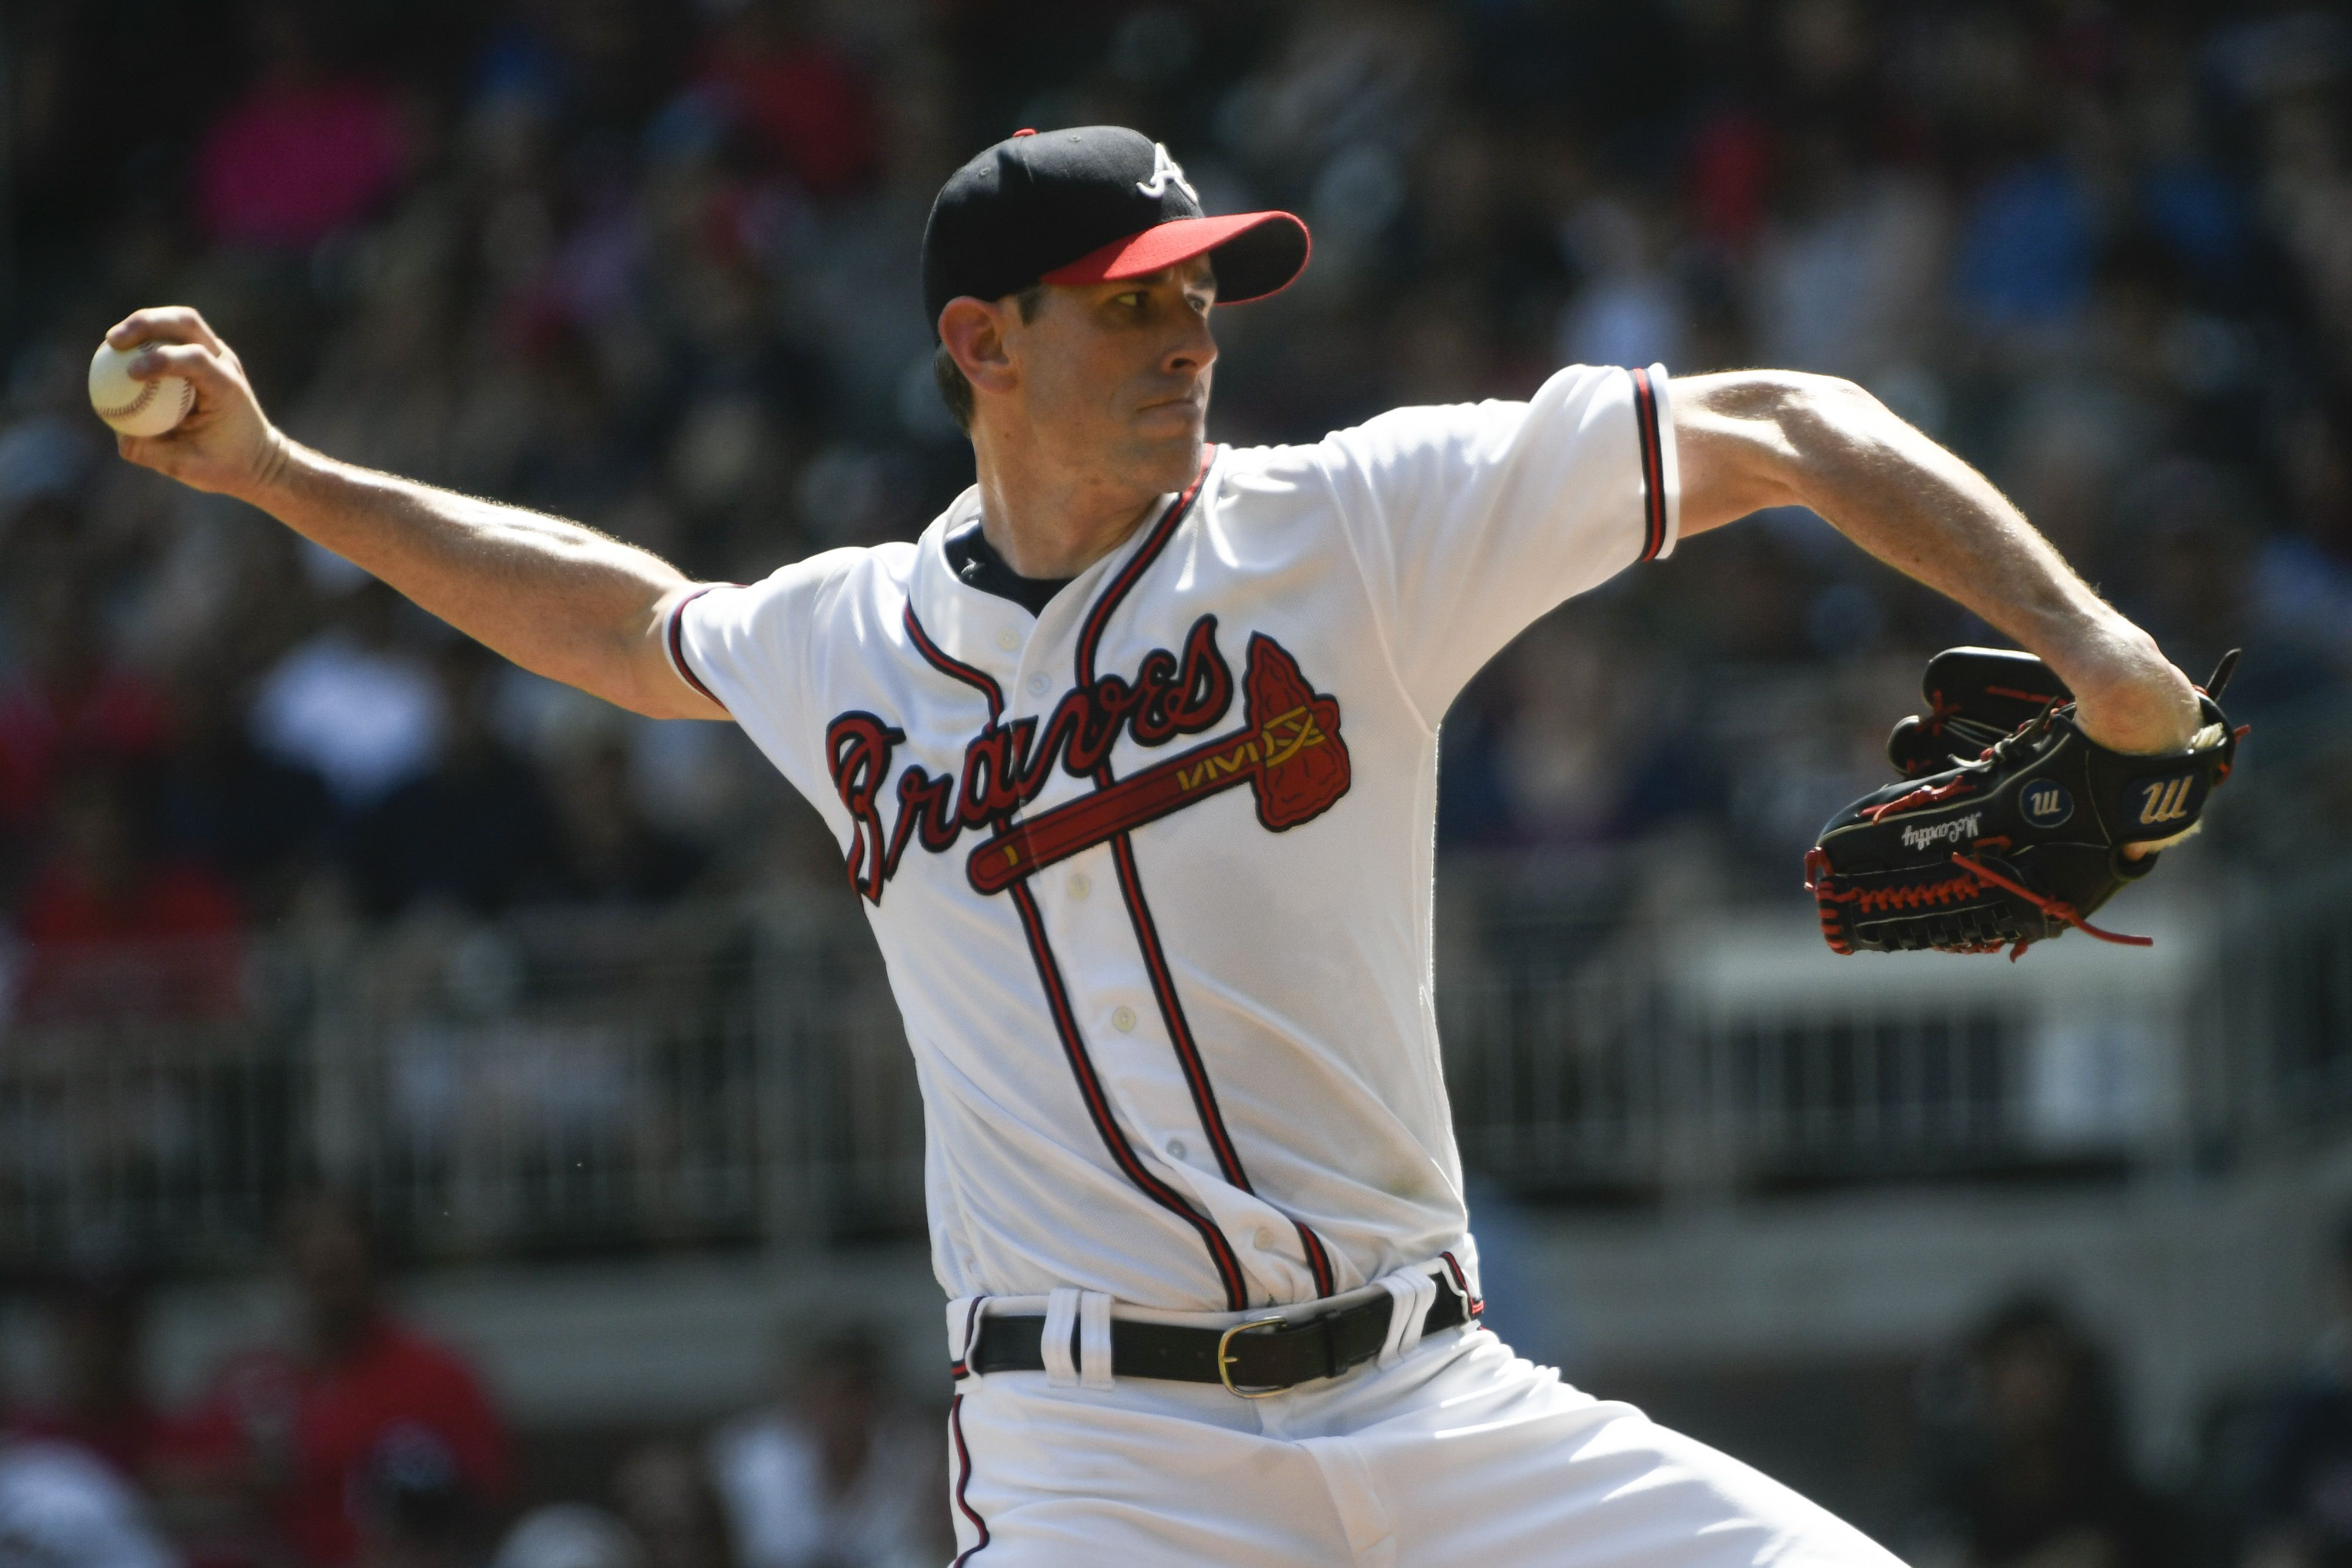 Atlanta Braves Pitcher Brandon Mccarthy Pitches During The First Inning Of A Baseball Game Against The Washington Atlanta Braves Atlanta Braves Pitchers Braves